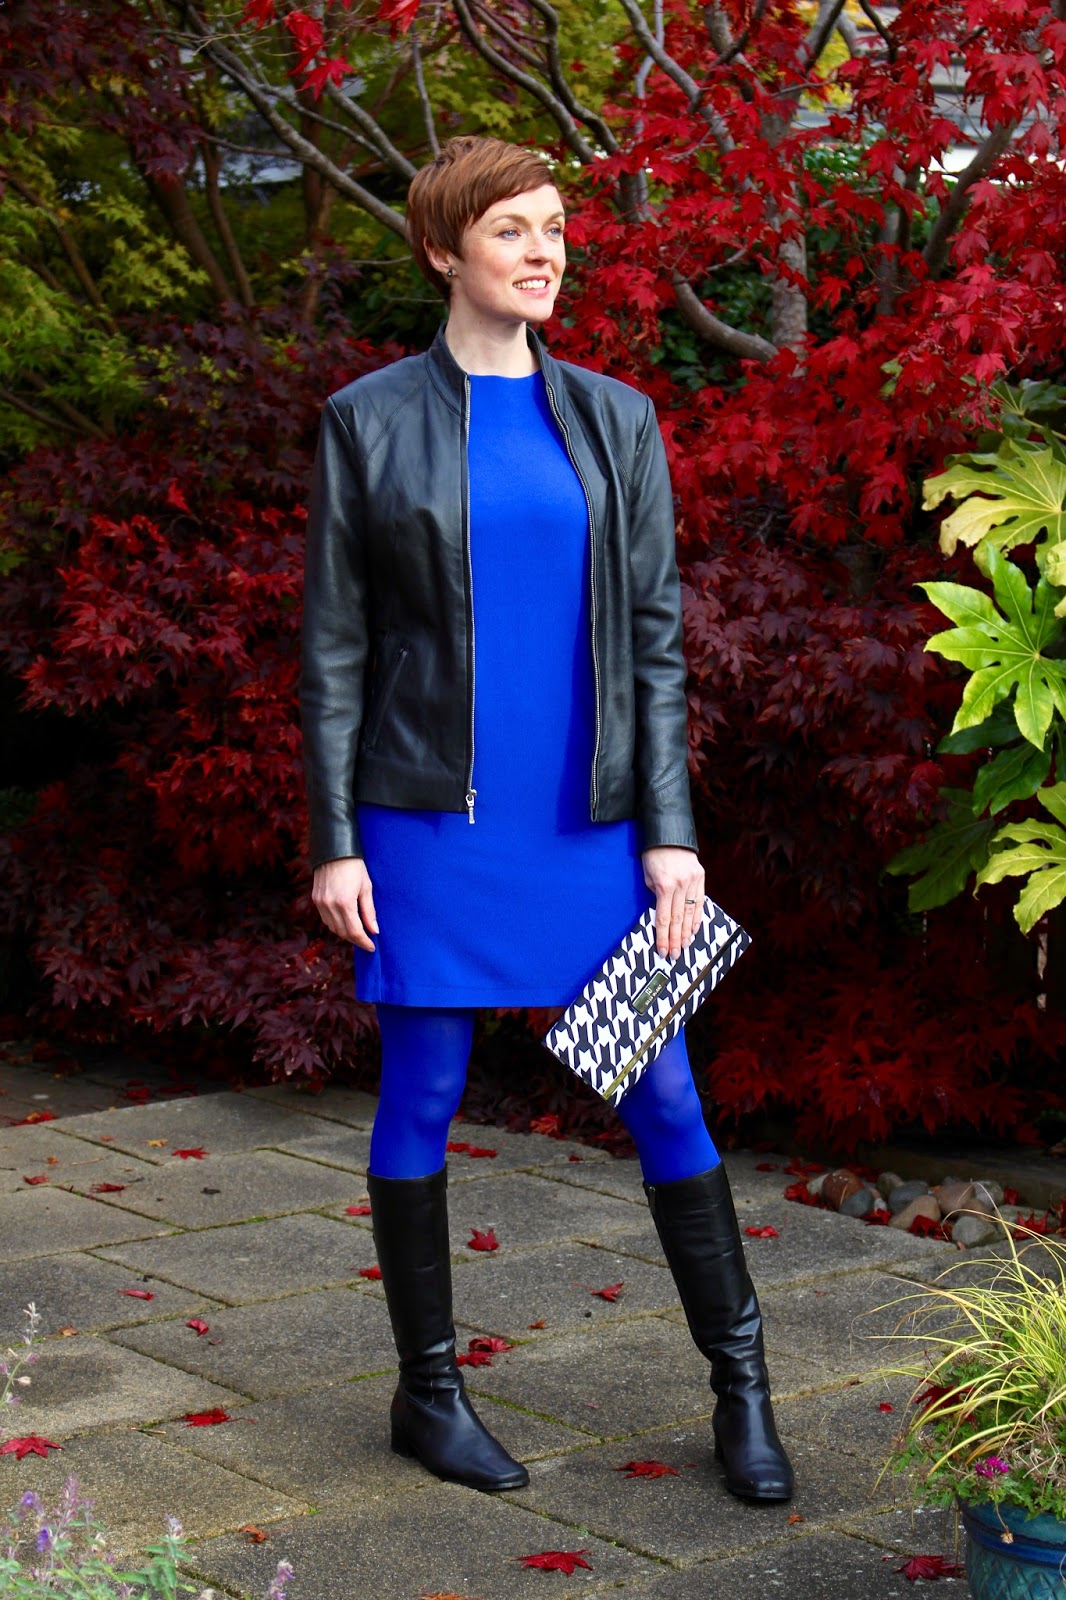 Cobalt Blue and Black Leather | Fake fabulous